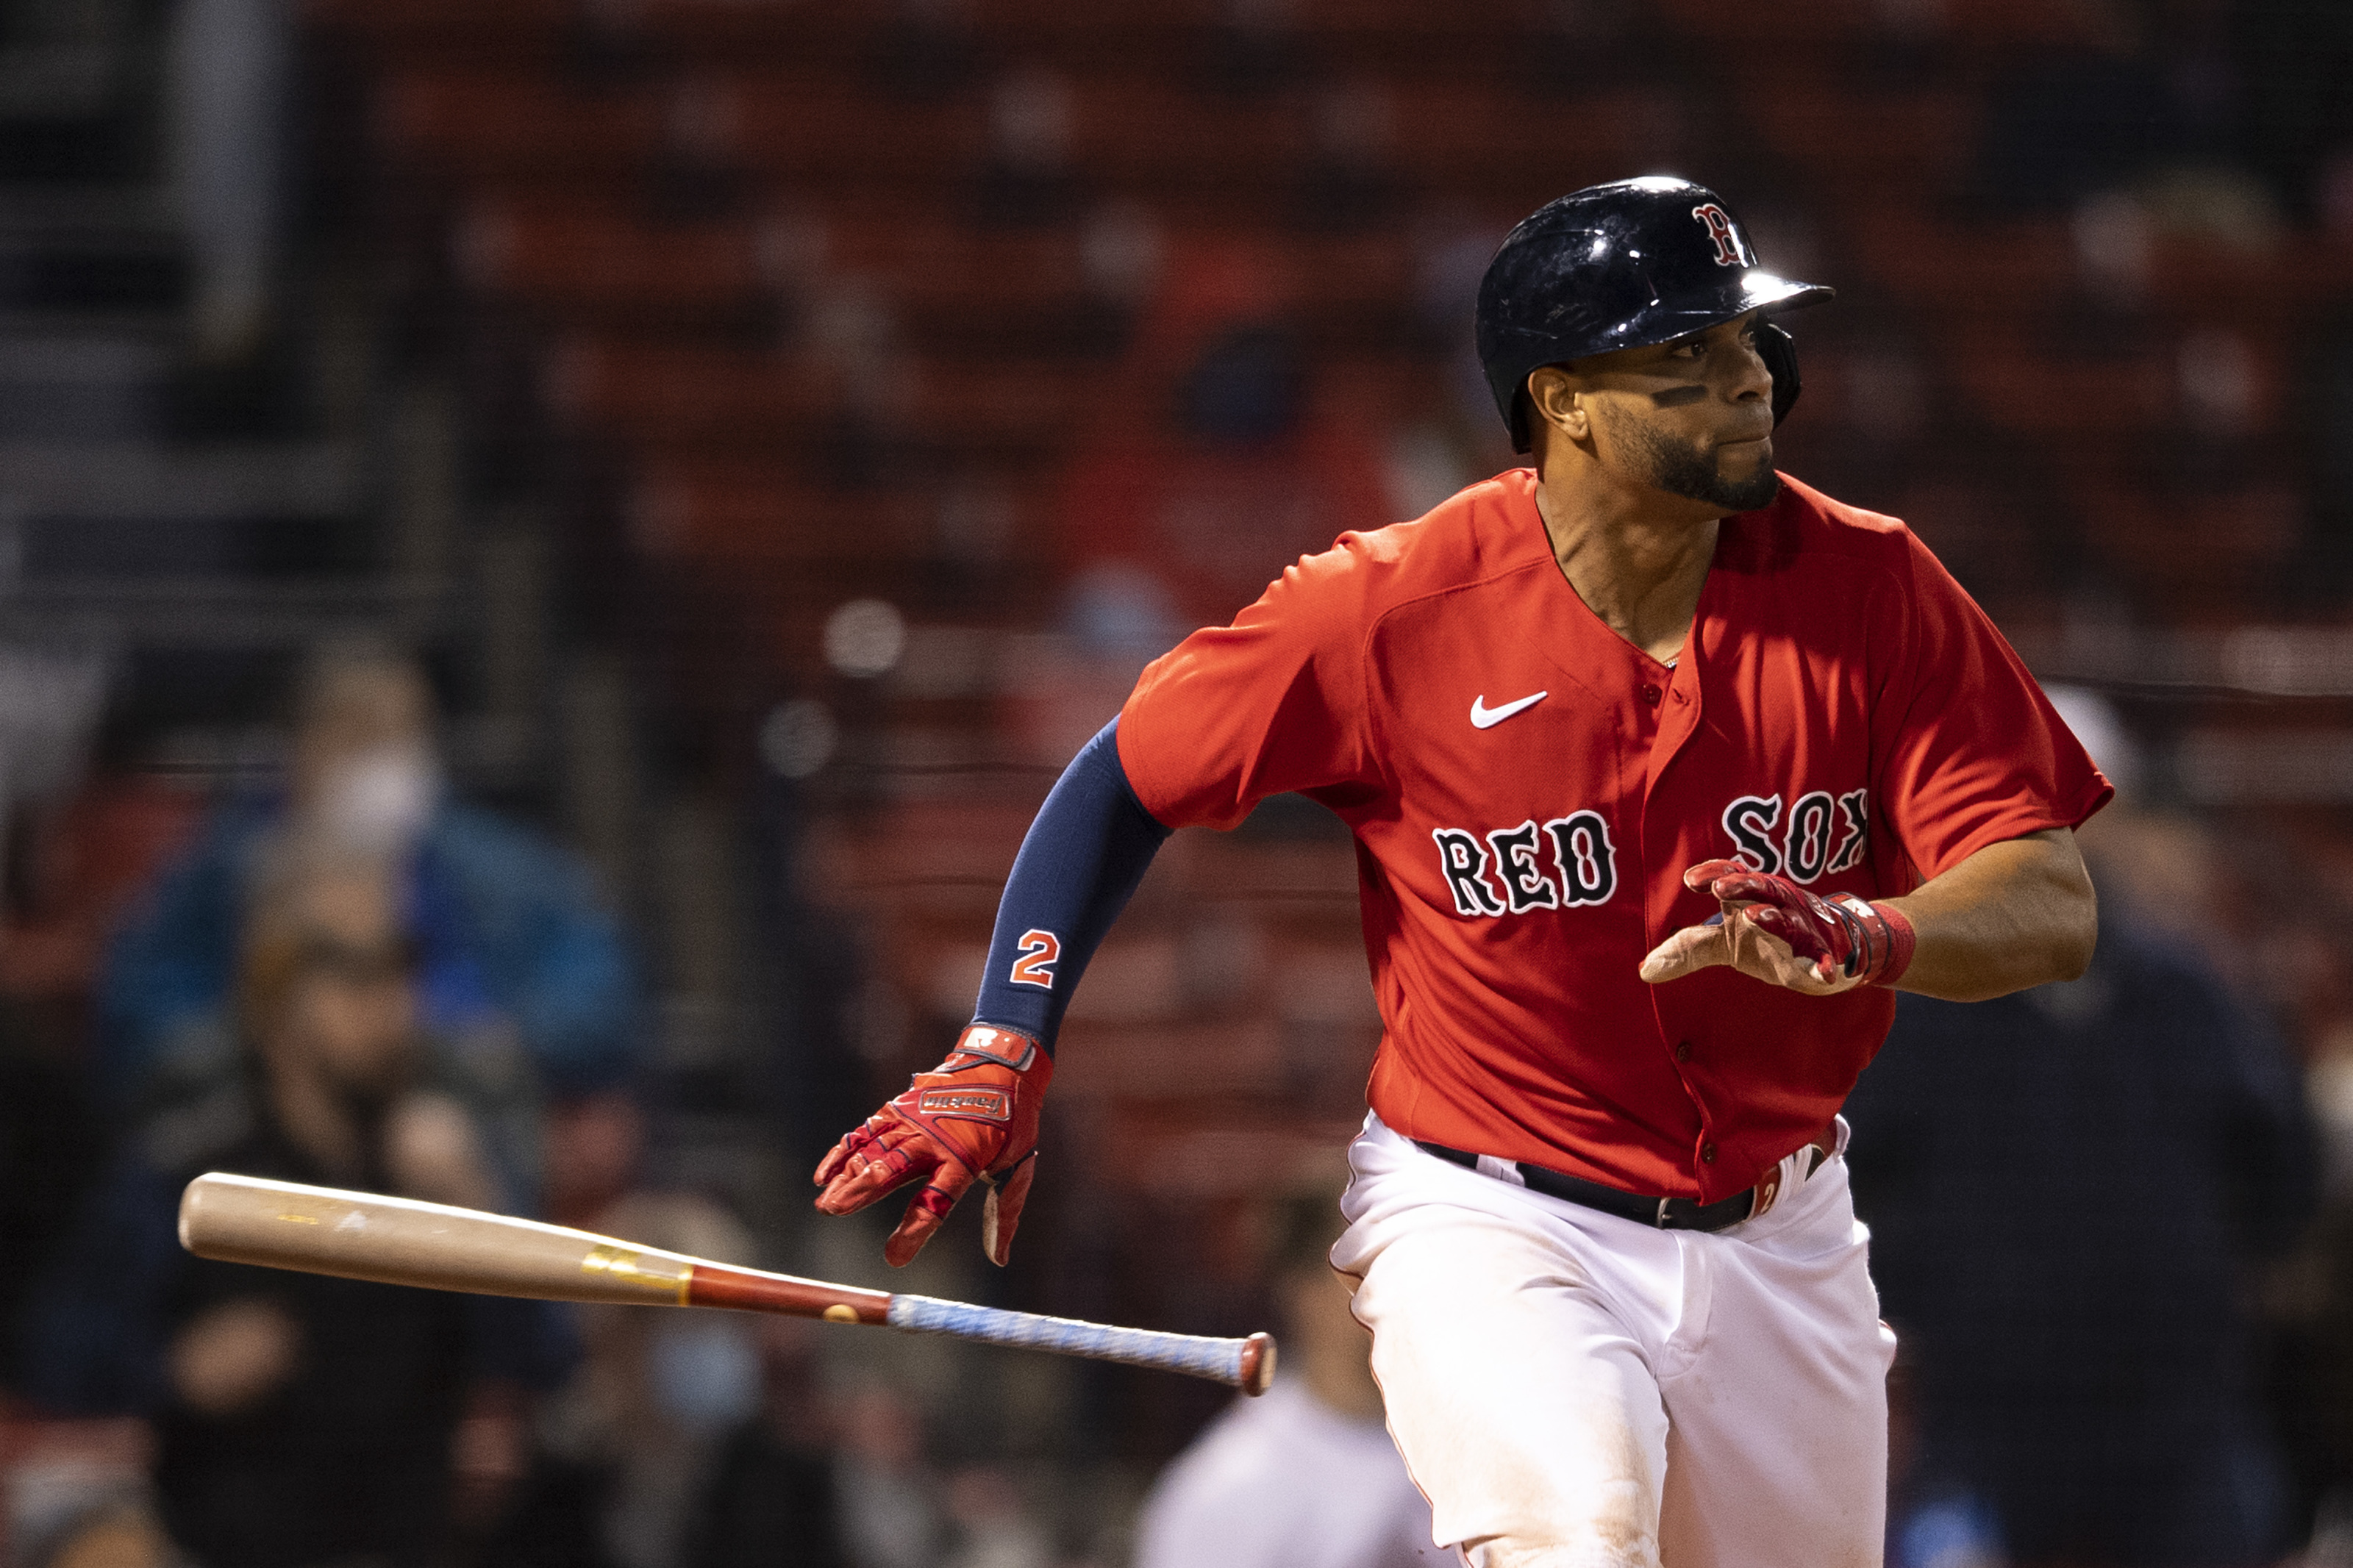 Red Sox: Xander Bogaerts climbs franchise list for shortstops with latest  home run